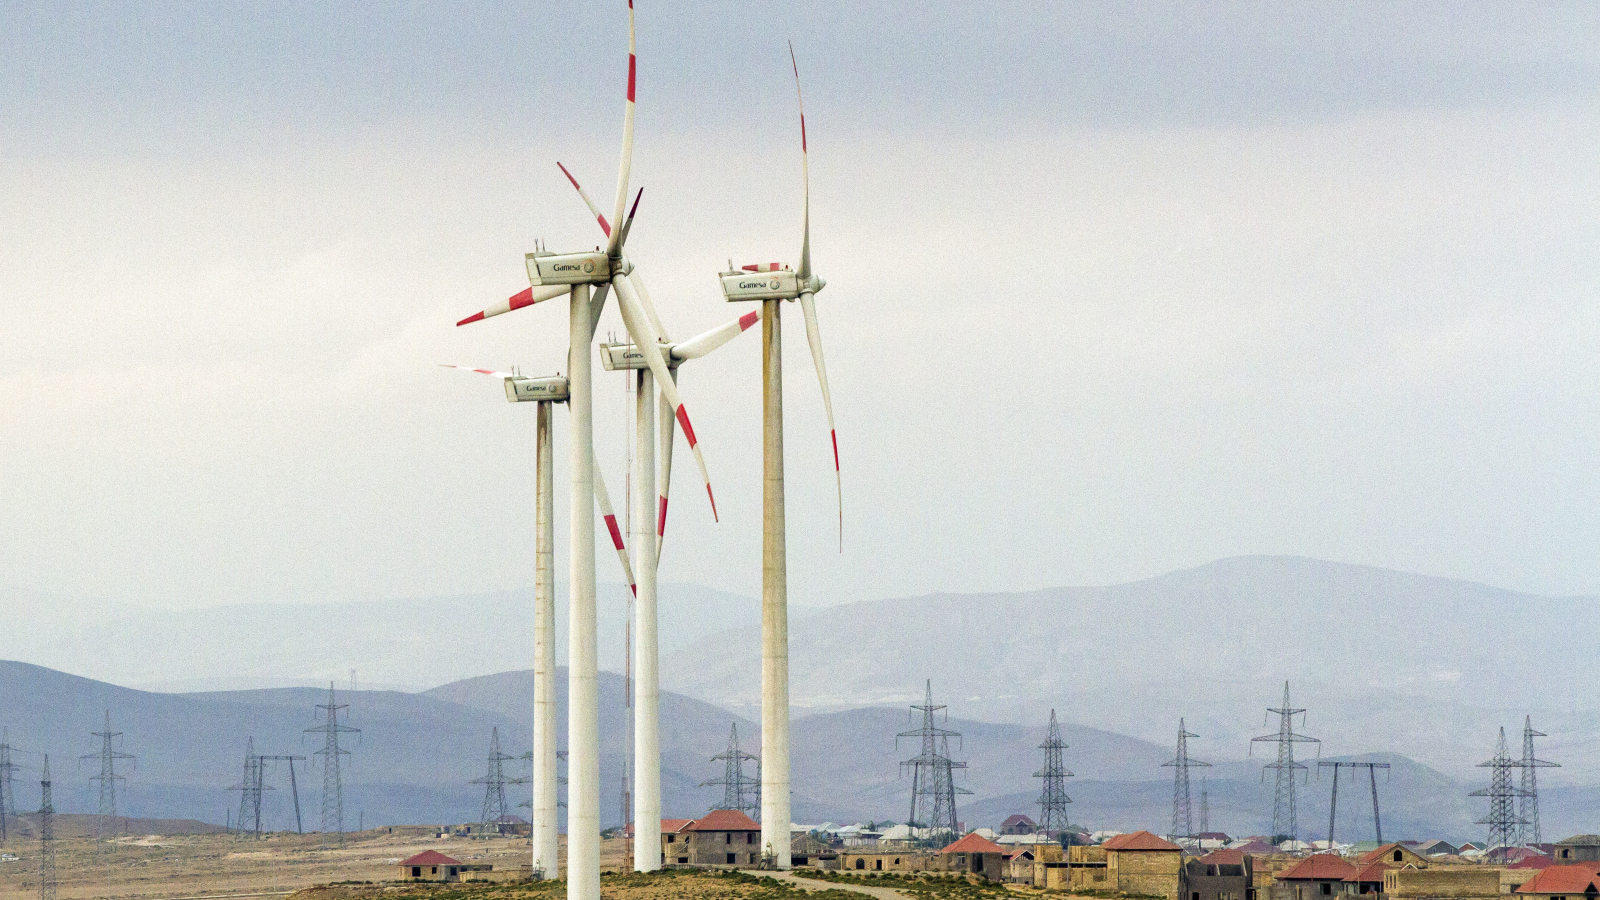 """Yeni Yashma"" wind farm in Baku."